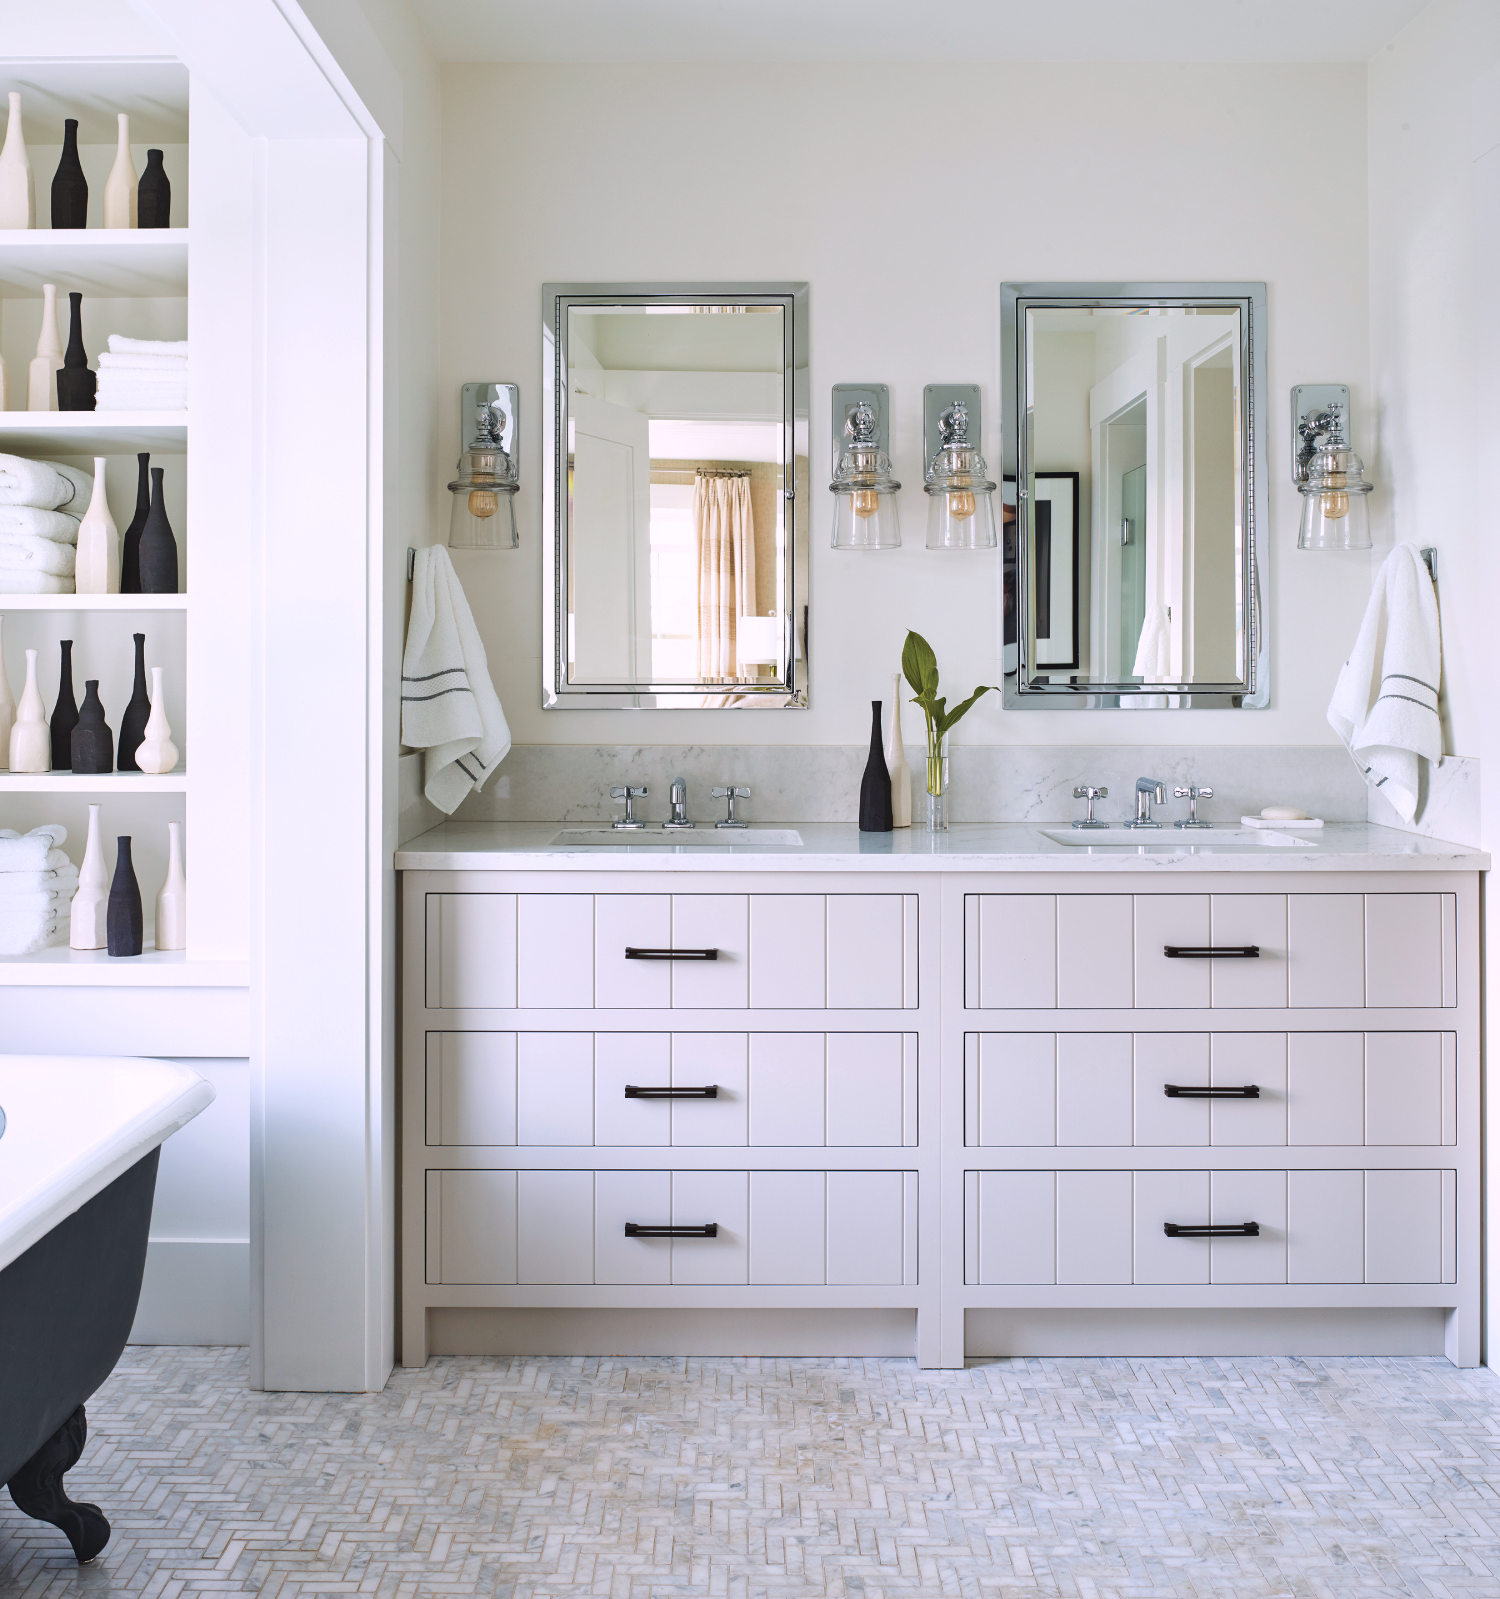 White bathroom with double vanity and open shelving